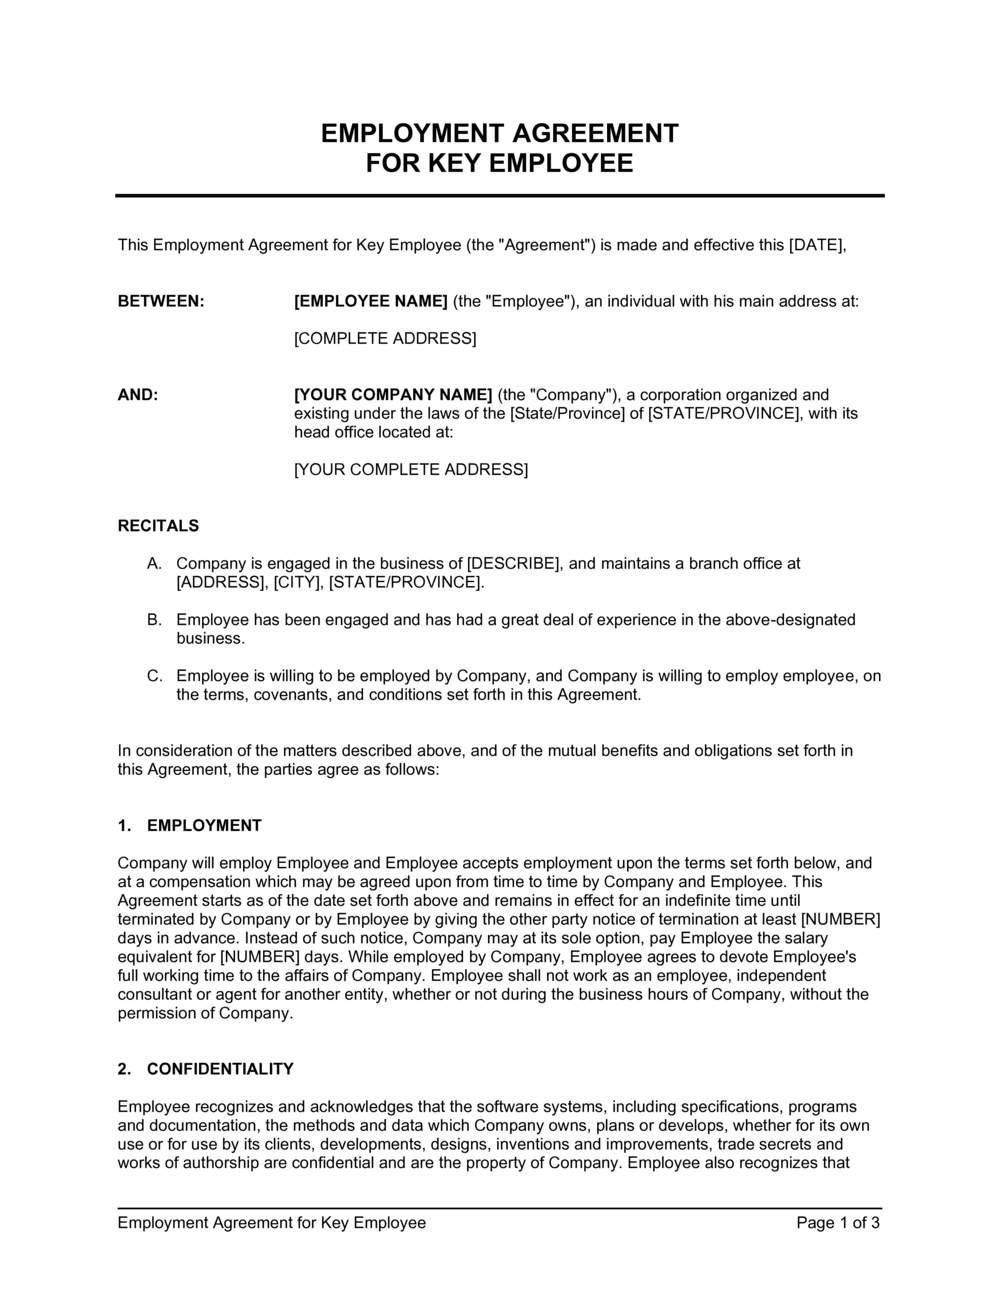 Business-in-a-Box's Employment Agreement Key Employee Template